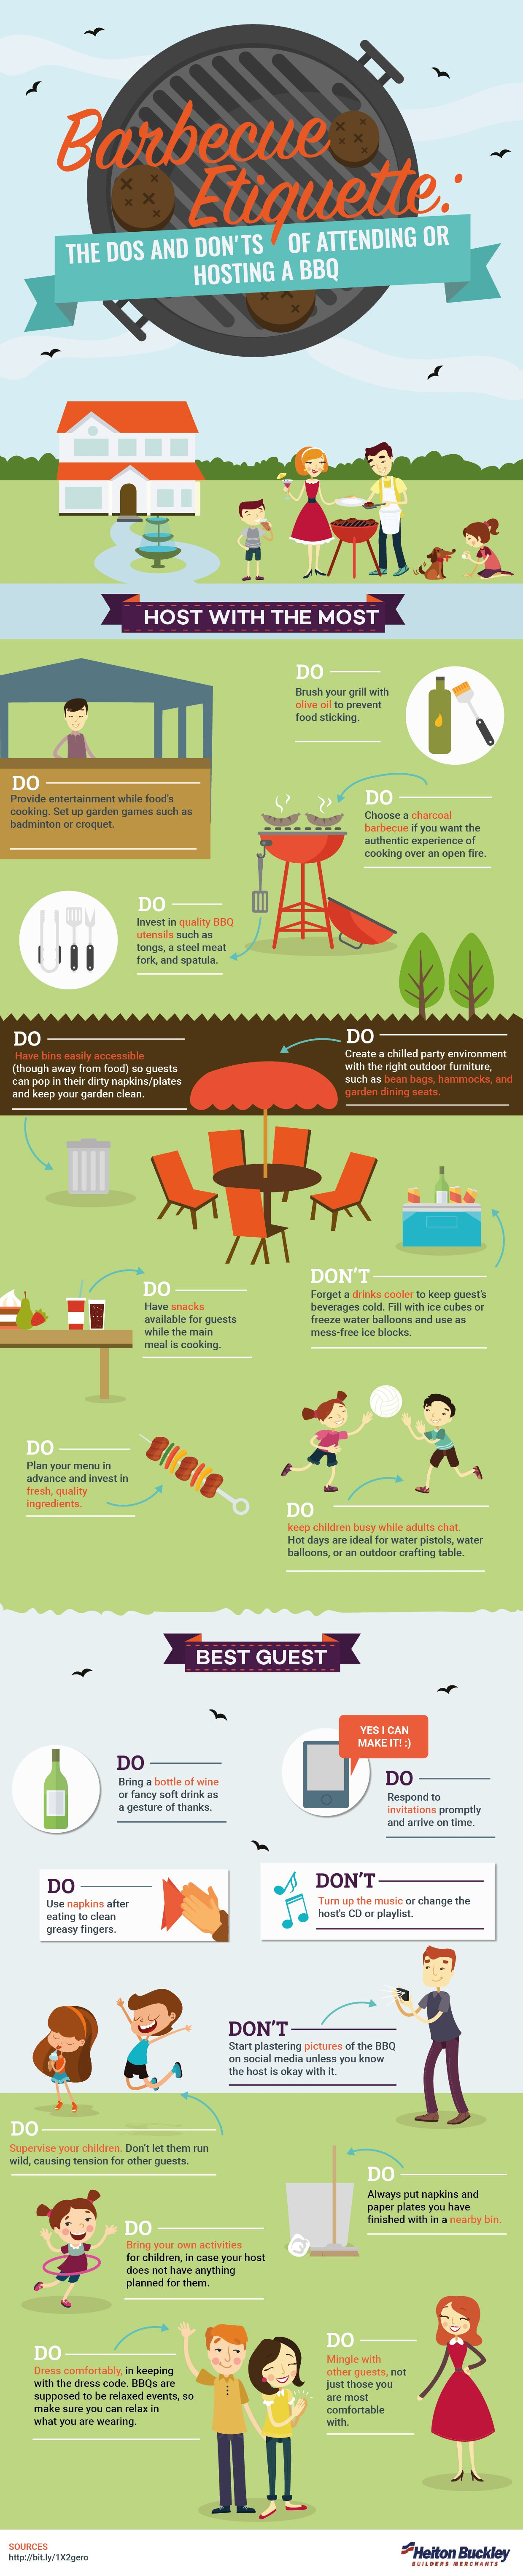 BBQ Etiquette: The Do's & Don'ts